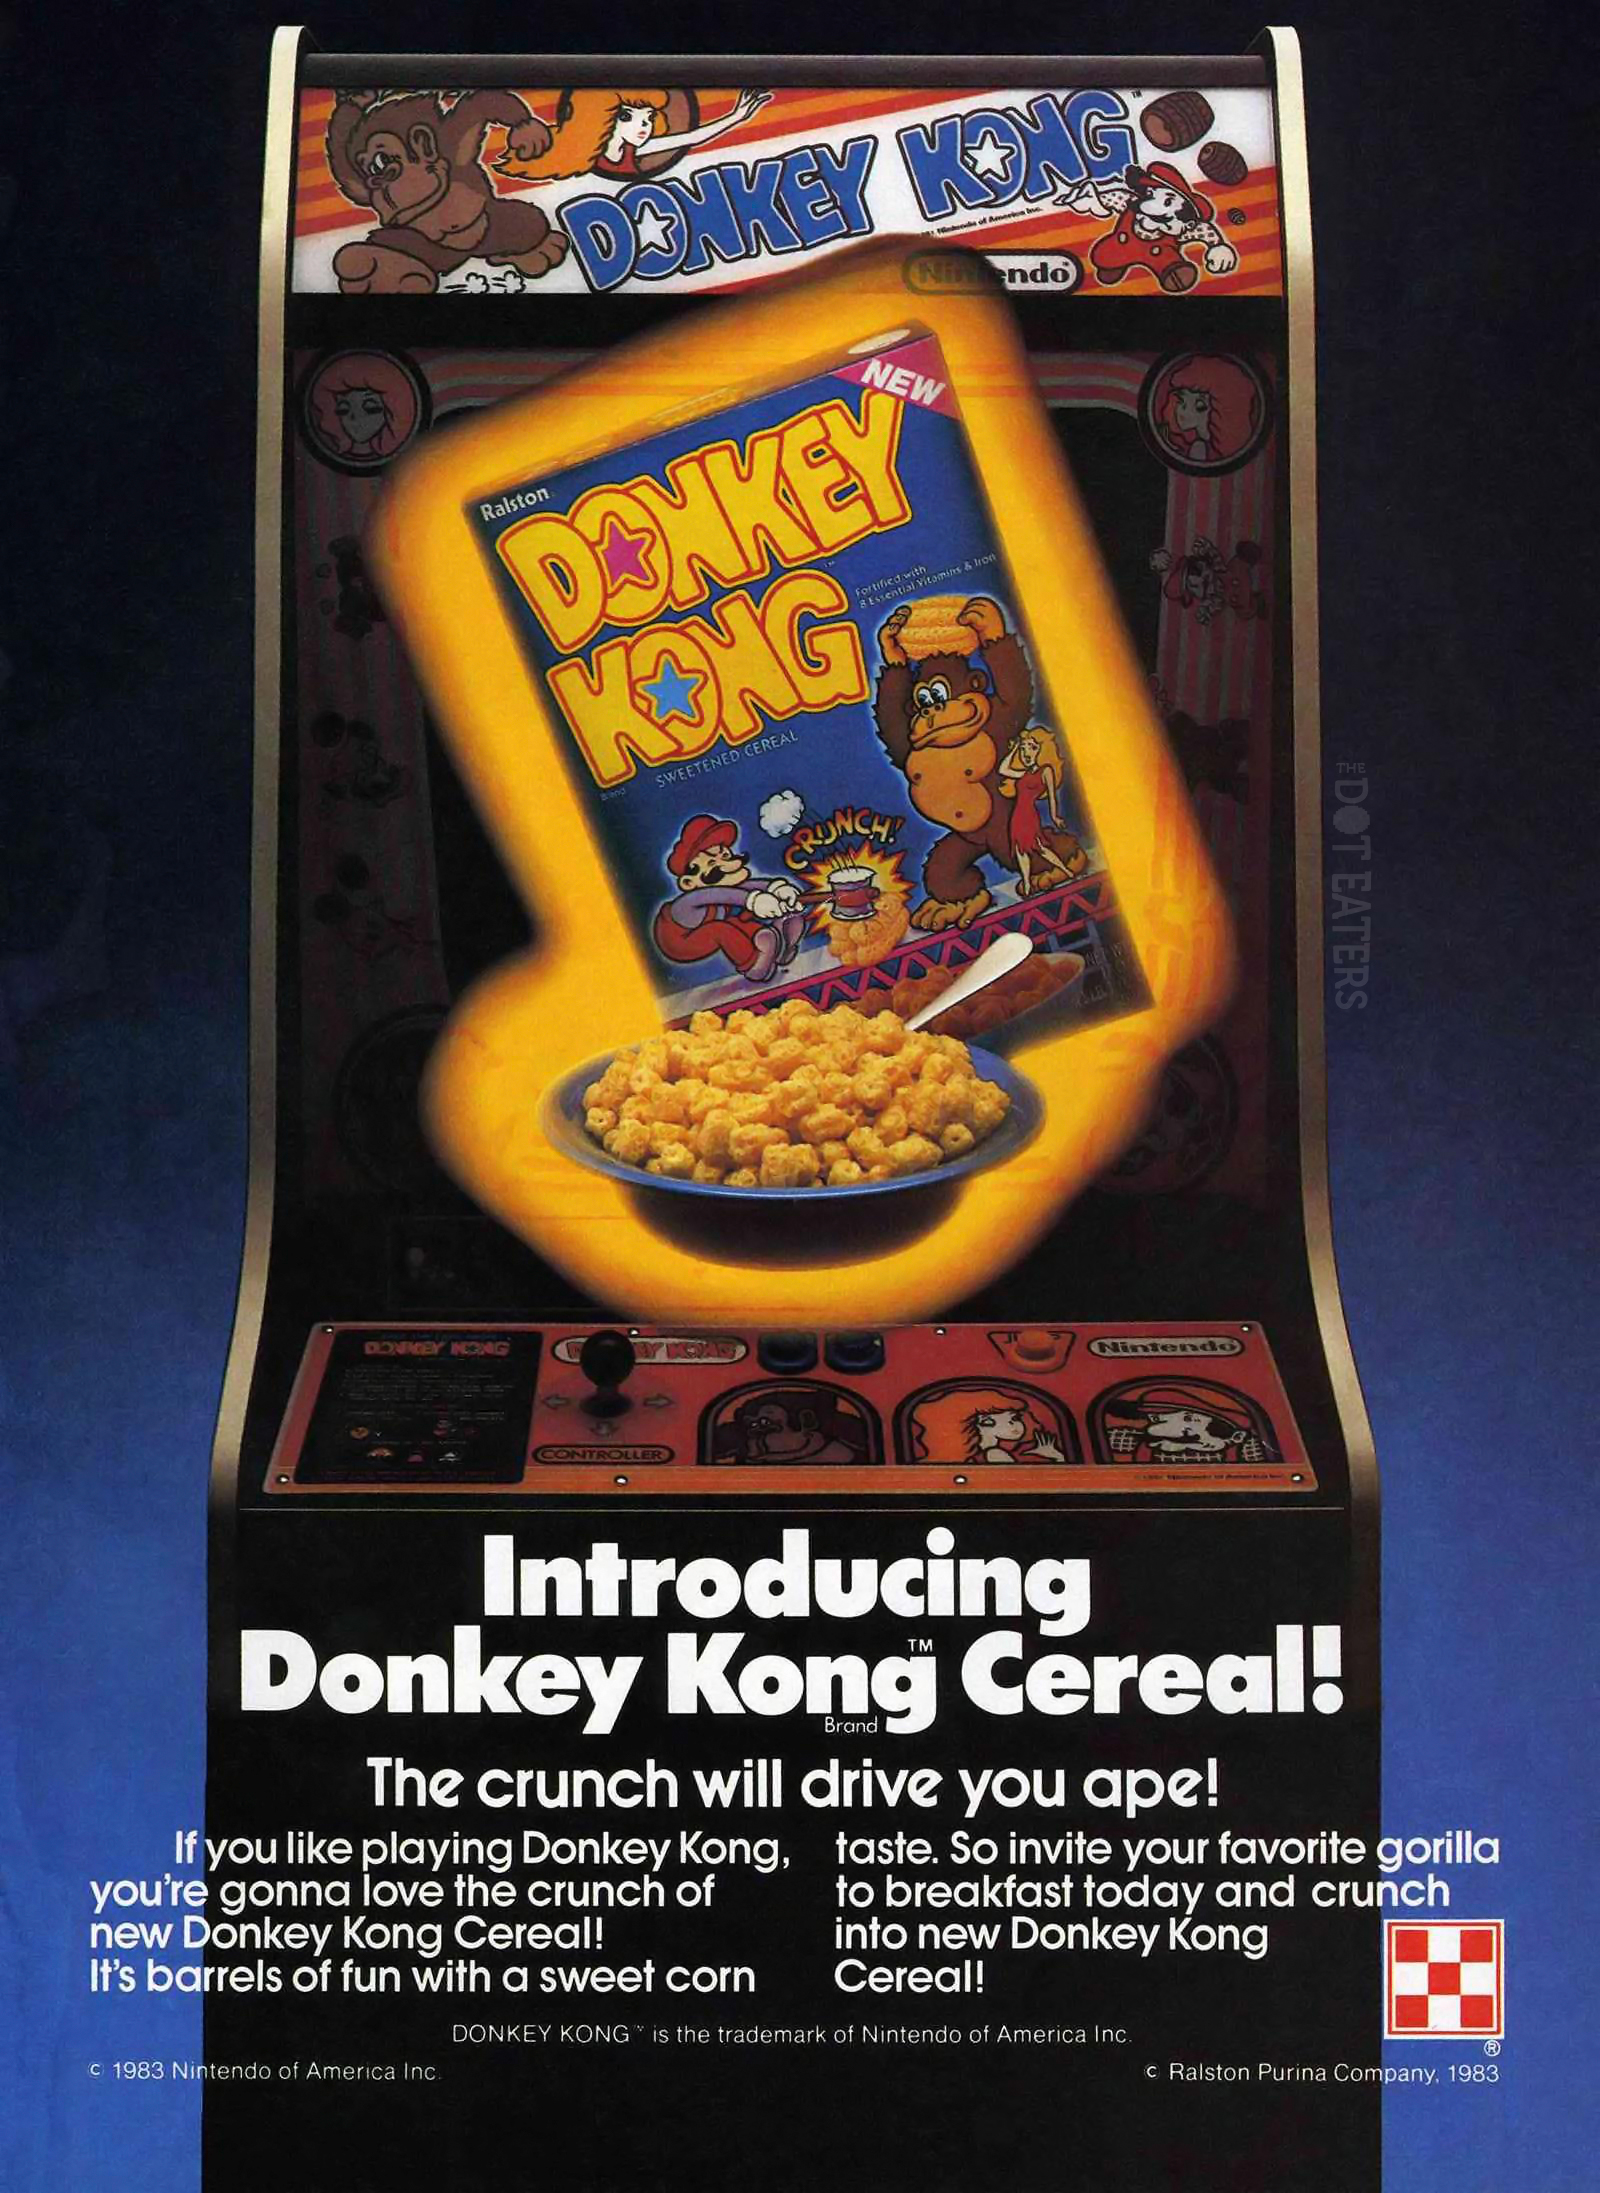 1983 ad for a cereal themed after Donkey Kong, an arcade video game by Nintendo